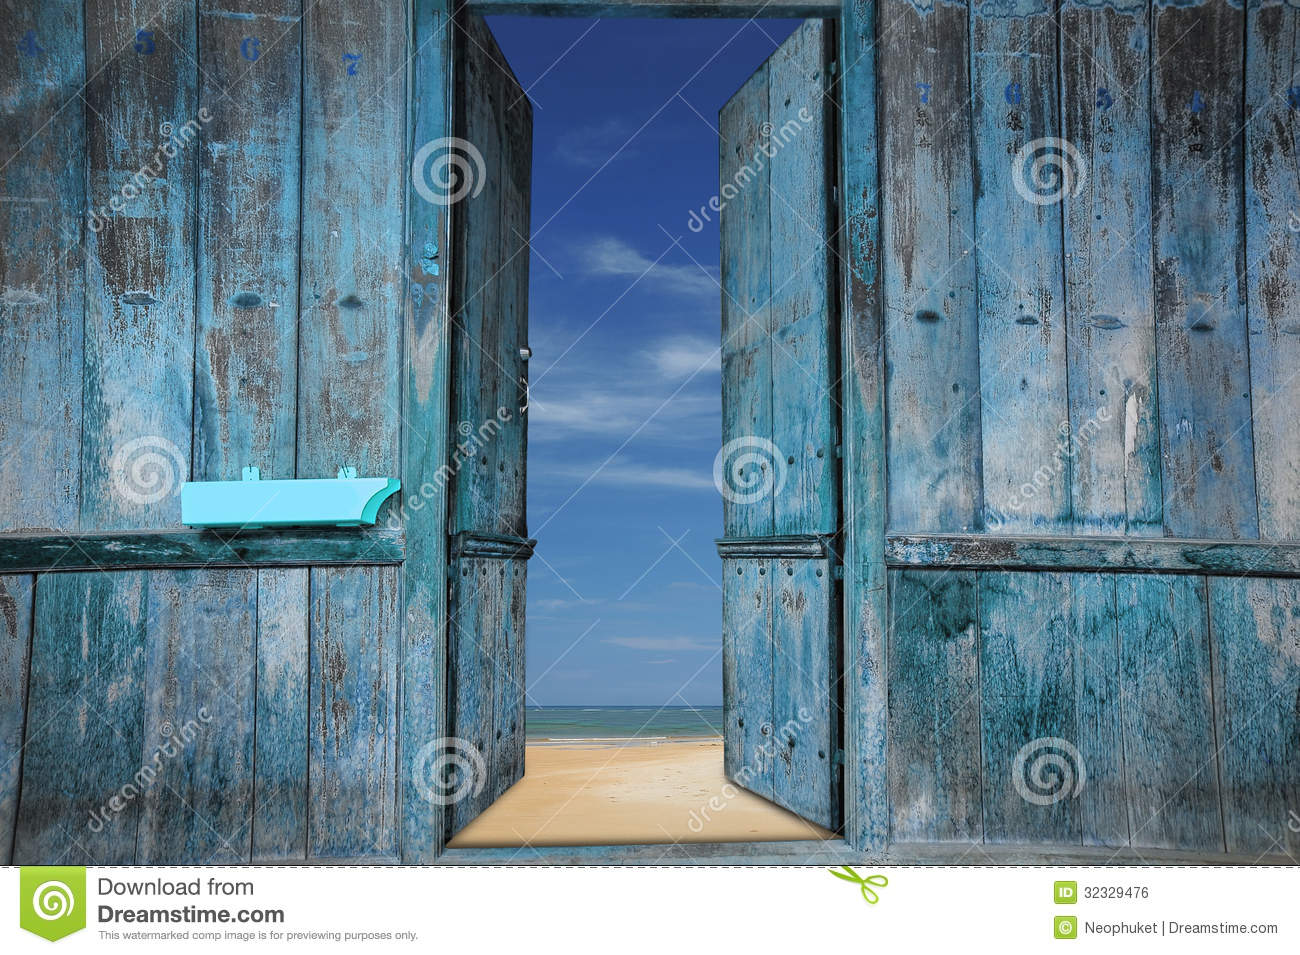 Old wooden doors royalty free stock image image 32329476 - Photos de vieilles portes en bois ...